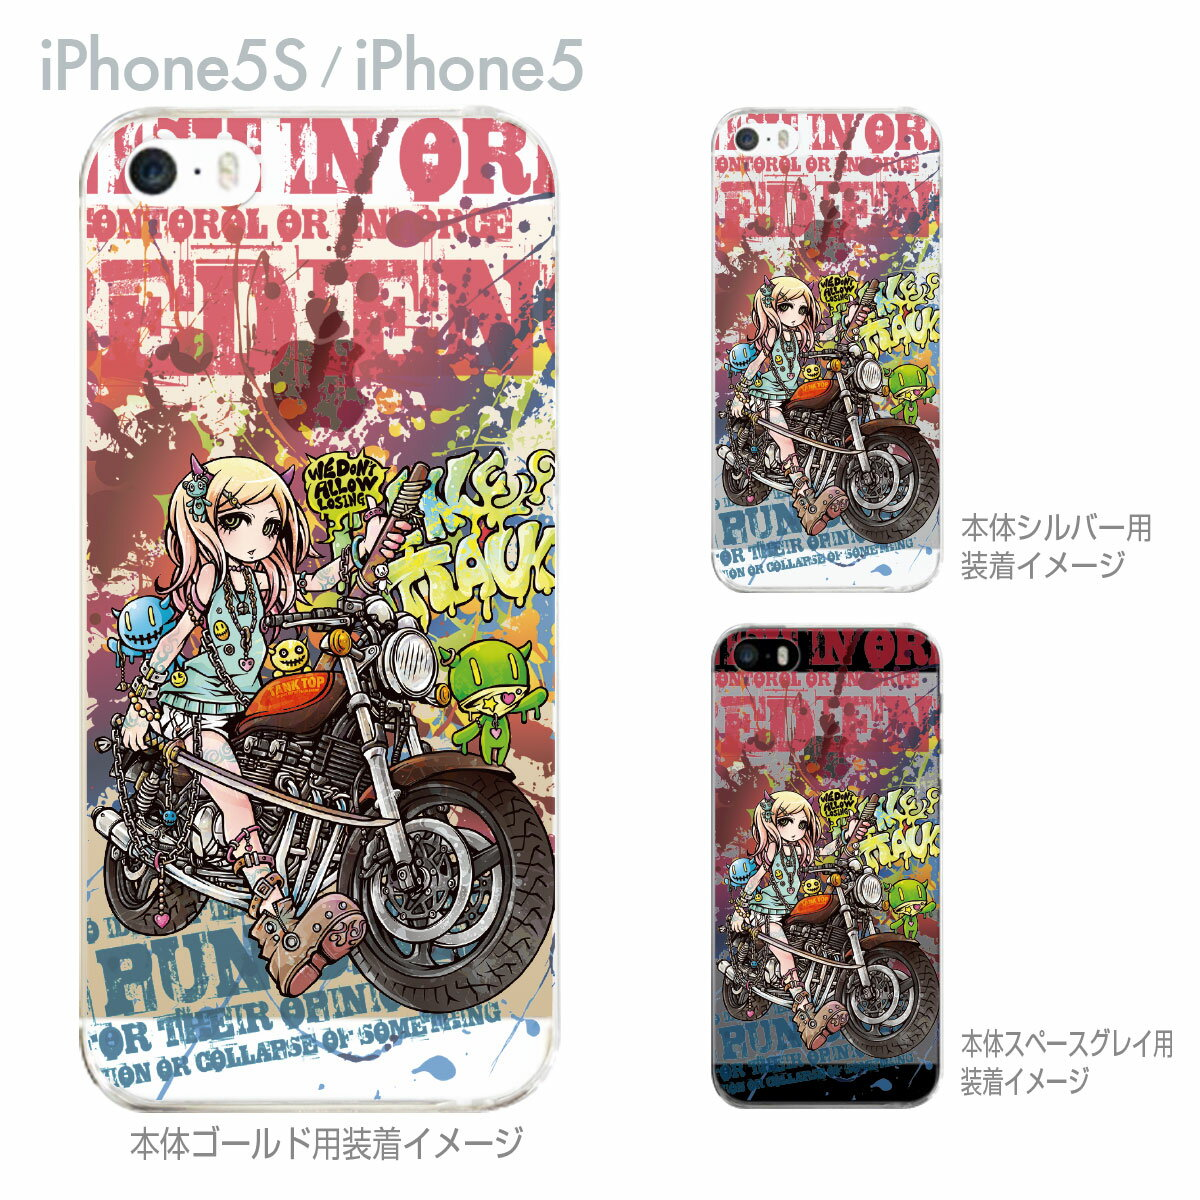 iPhone5s iPhone5 iPhone SE Clear Arts iPhone ケース カバー スマホケース クリアケース ハードケース【Project.C.K.】【プロジェクトシーケー】【BLADE】 11-ip5s-ck0013s